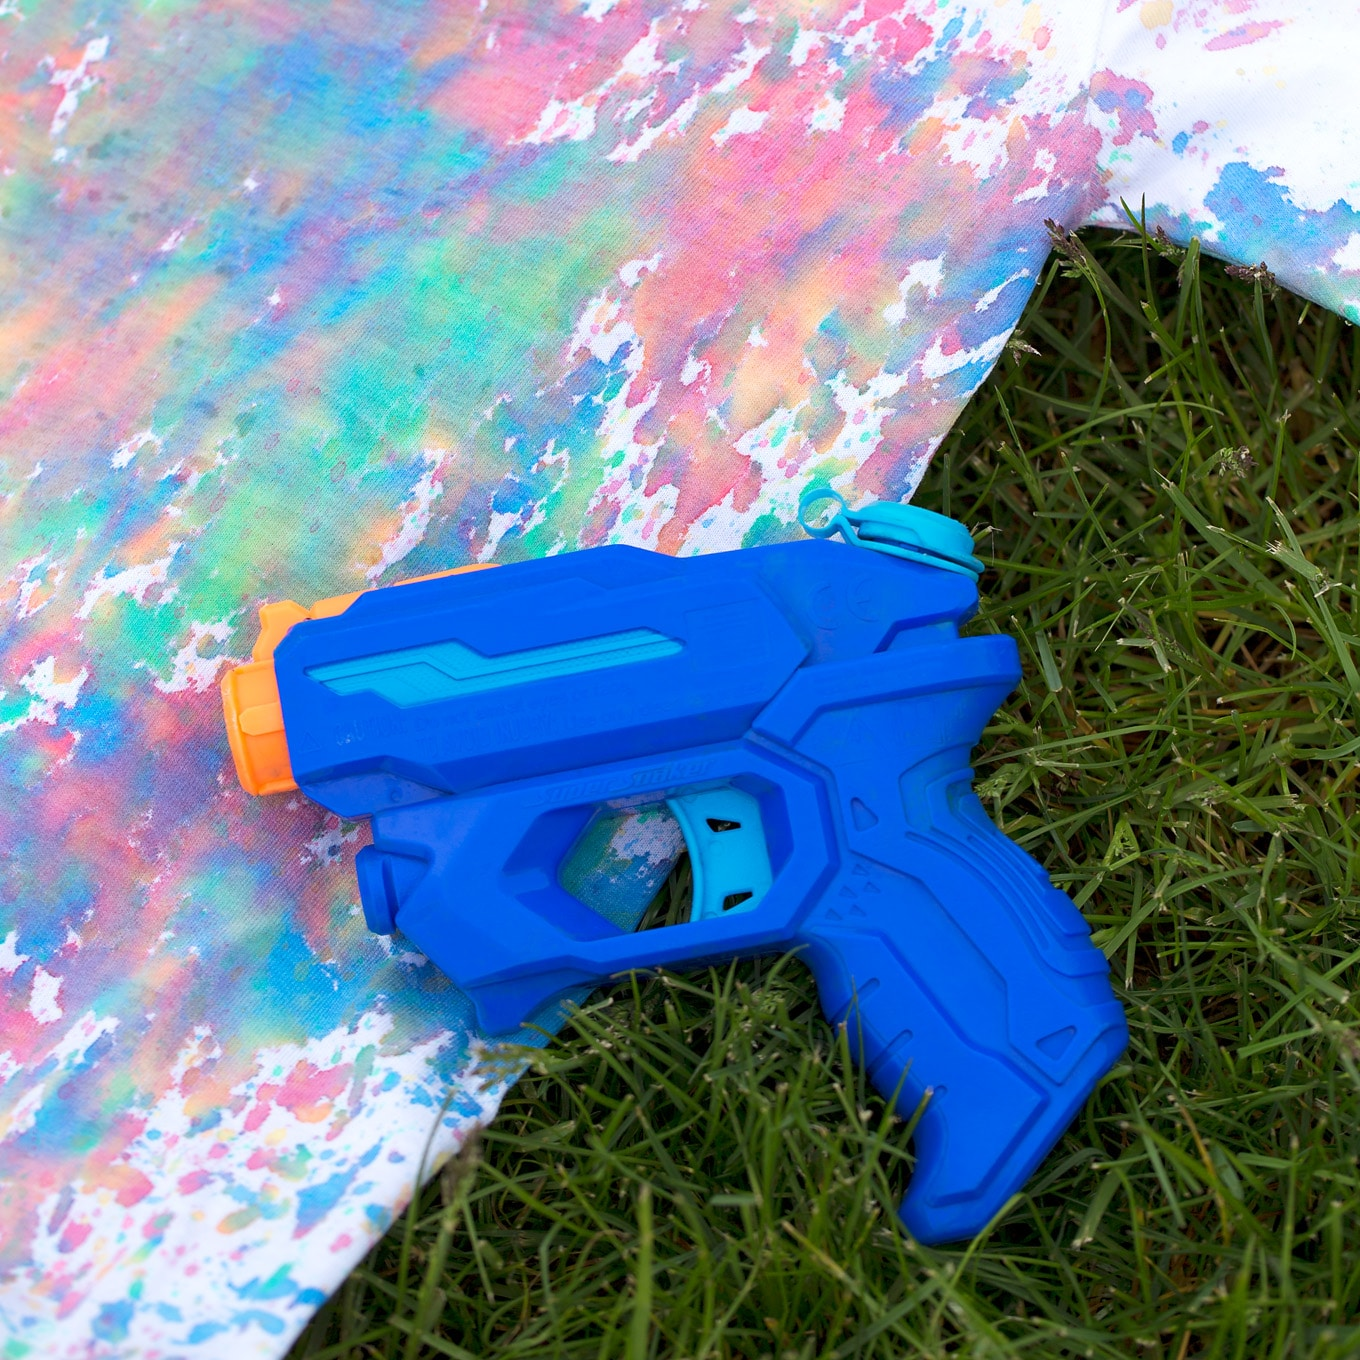 Rock Summer with Colorful Squirt Gun Tie-Dye